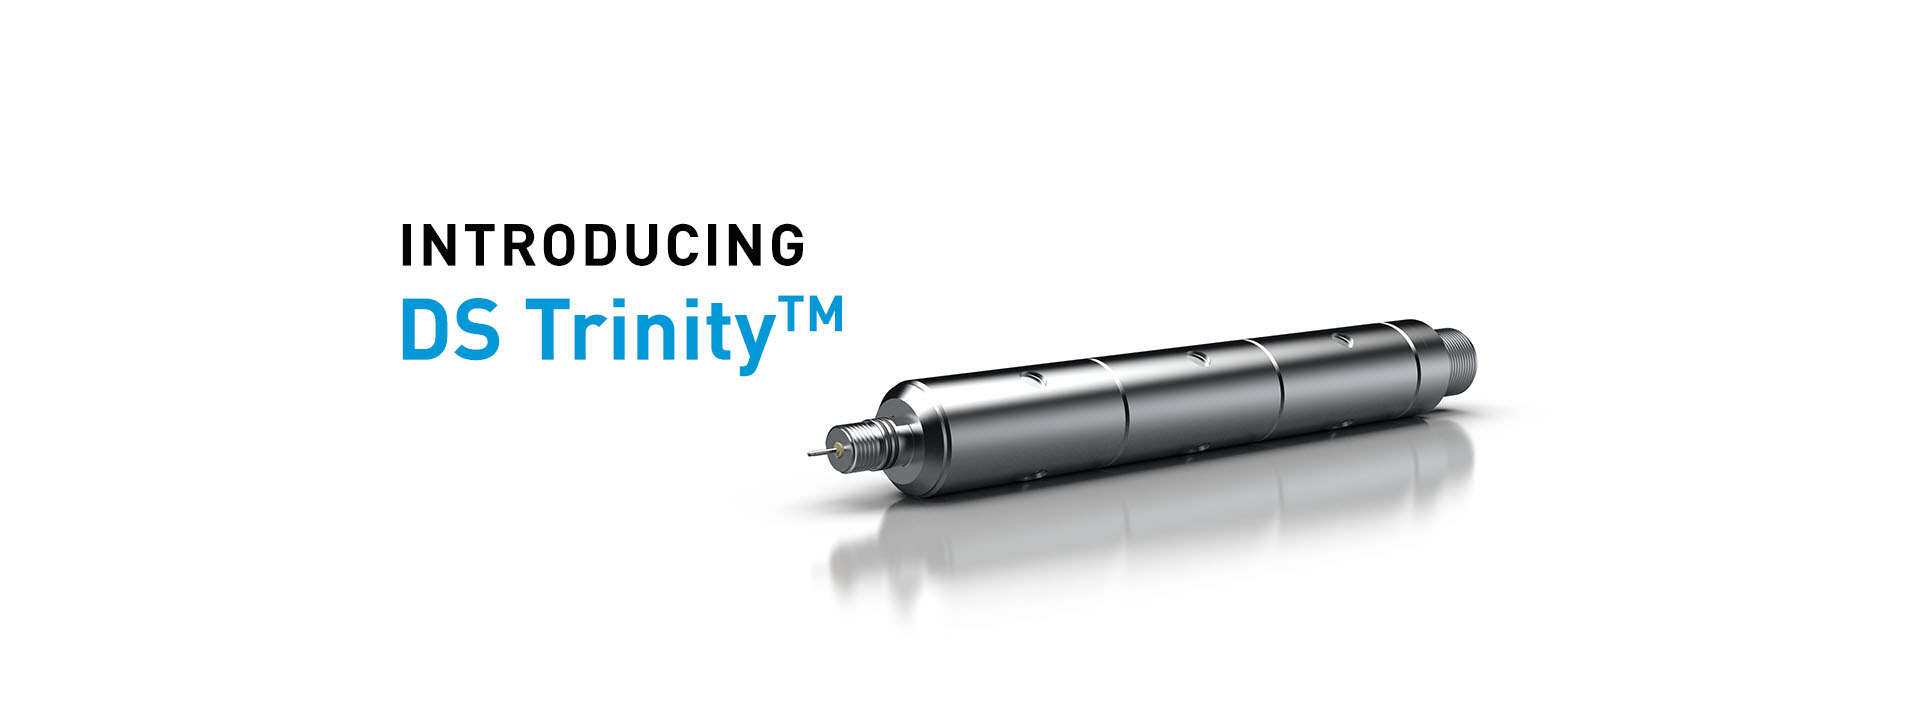 DS Trinity Perforating Gun System